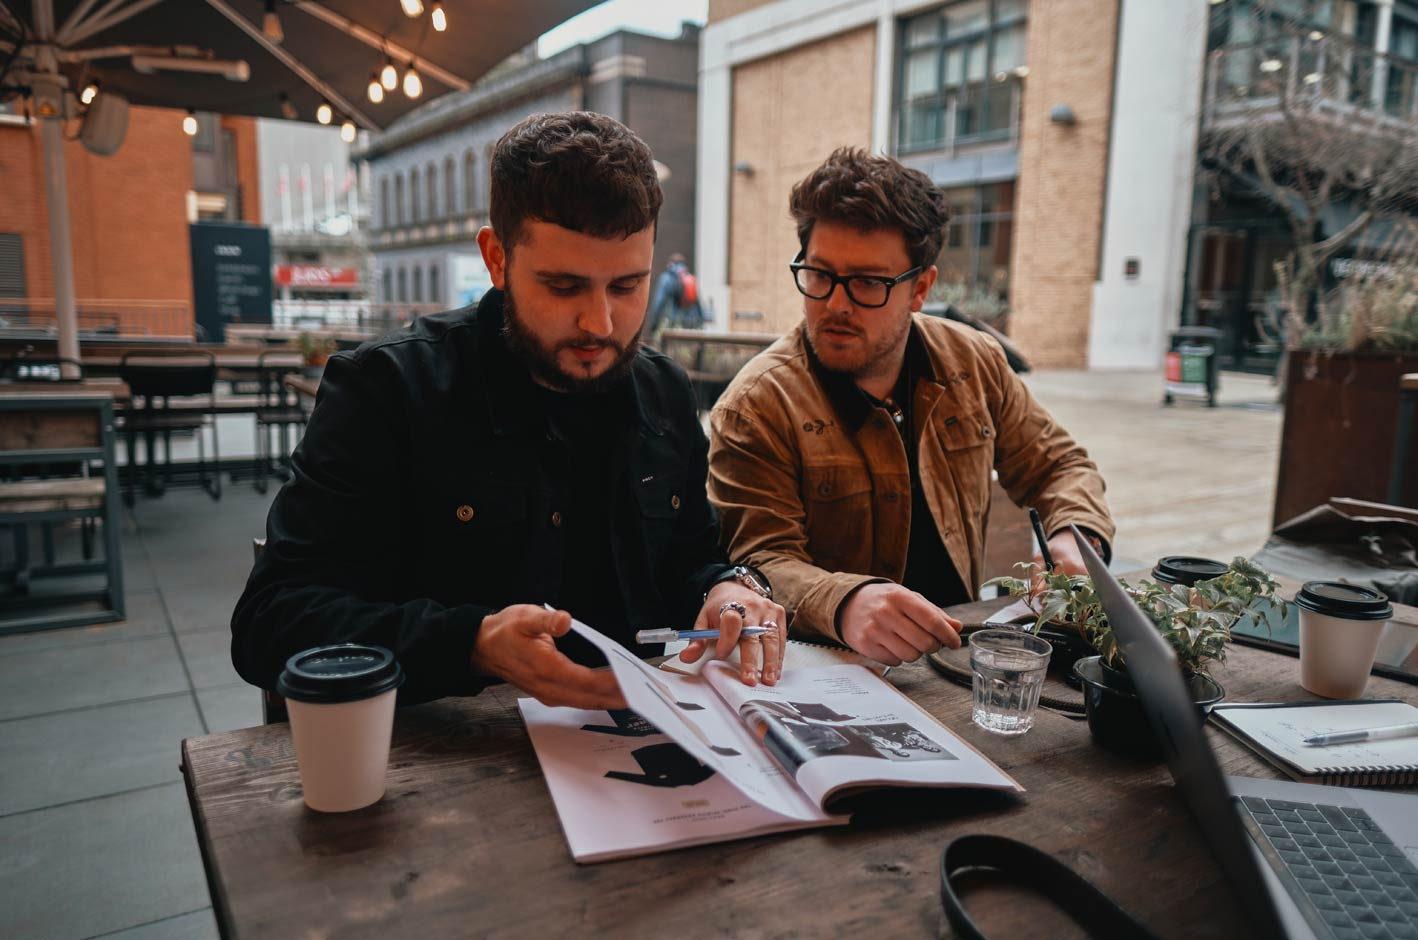 P&Co going over designs in a coffee shop